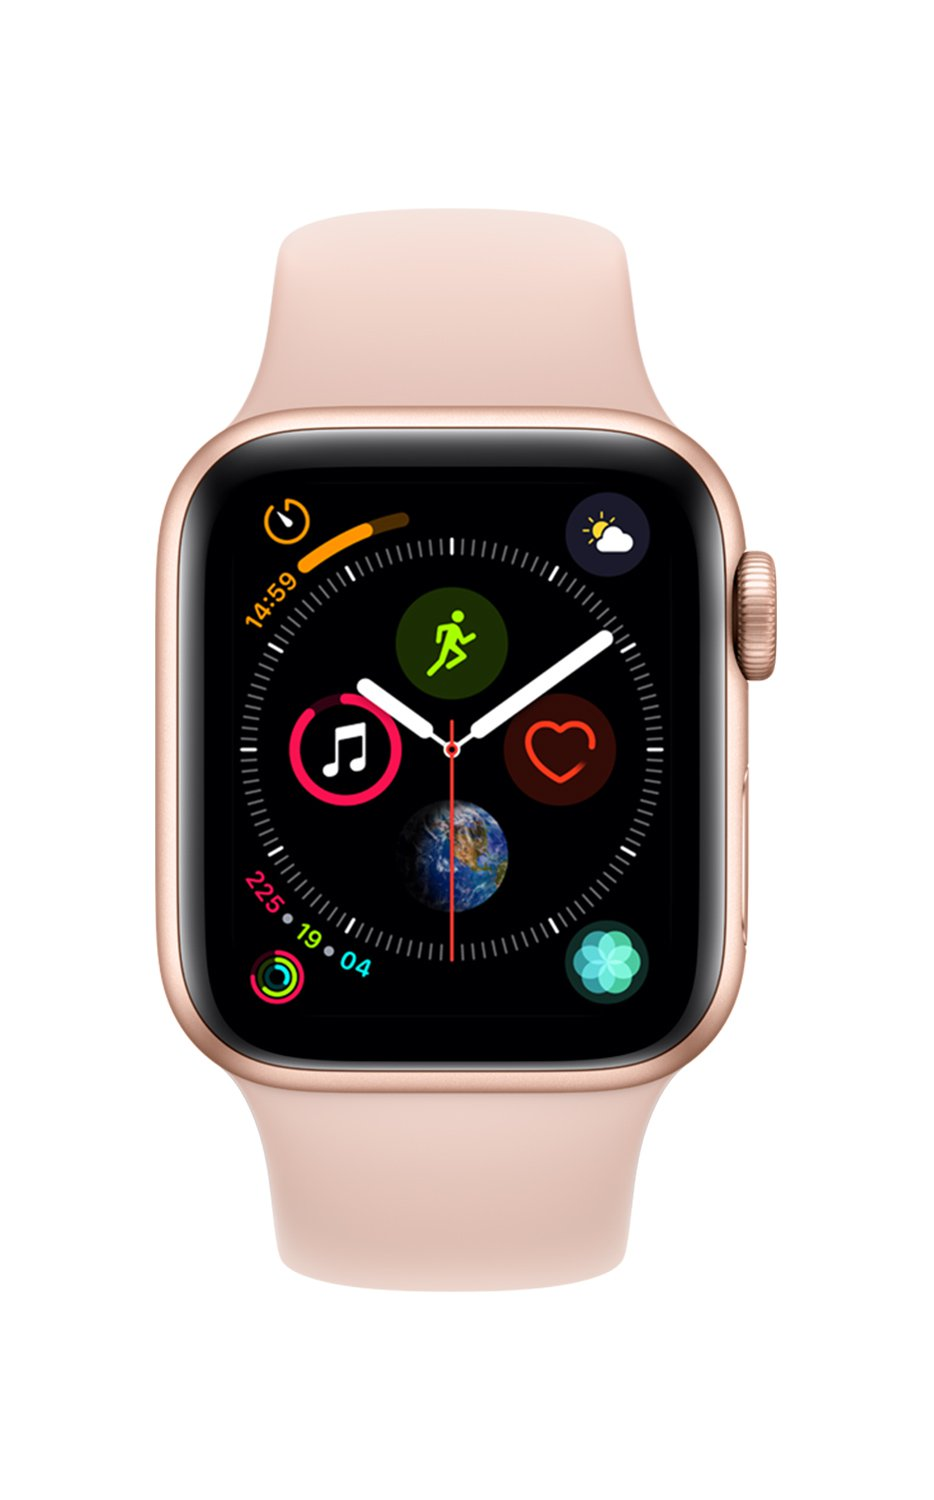 Apple Watch Series 4 with LTE connectivity now available in Austria and Finland